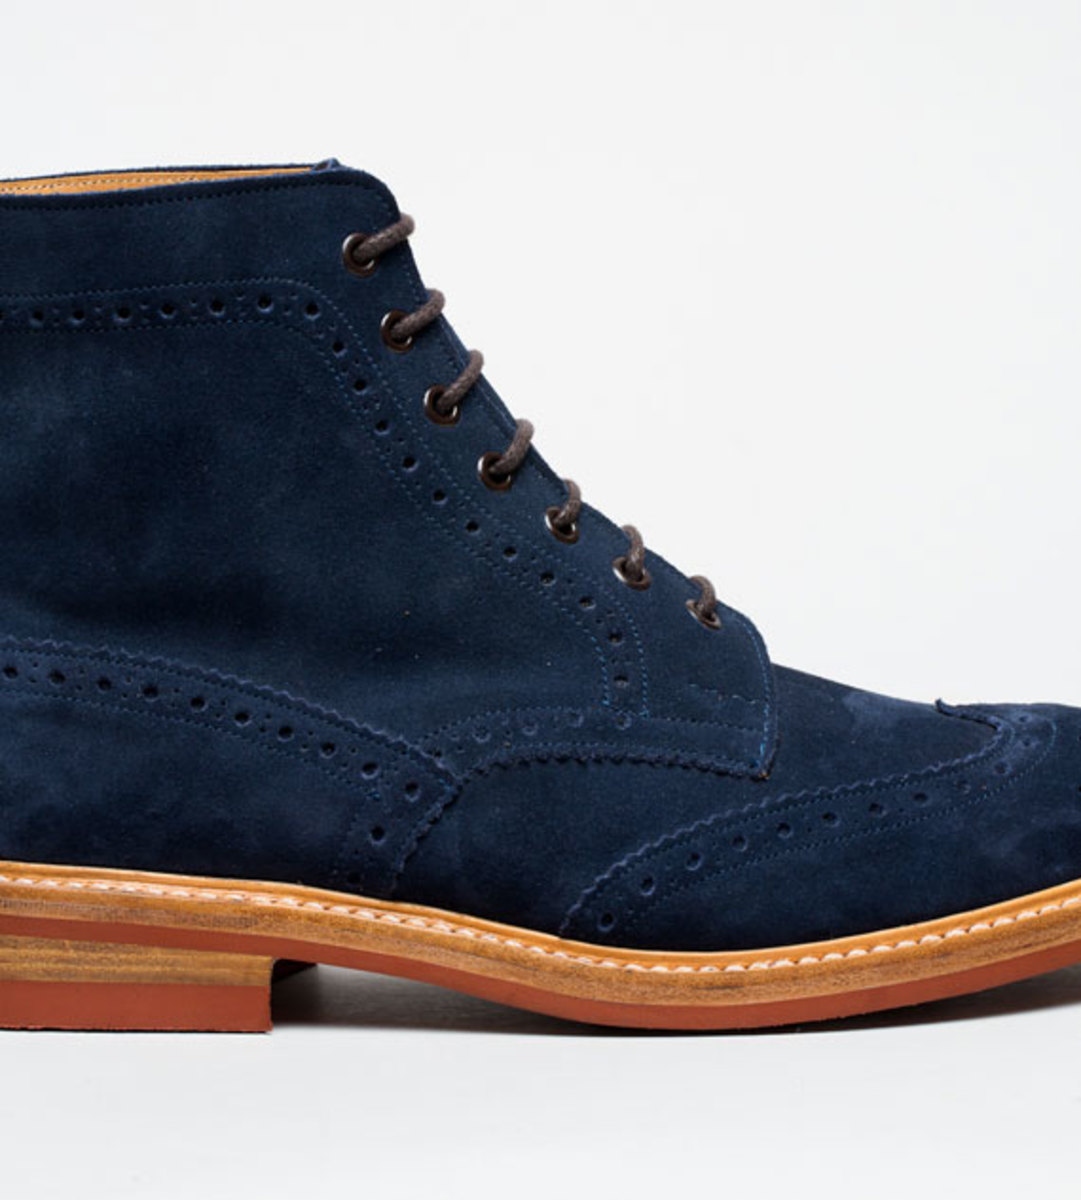 norse-projects-trickers-repello-brogue-boots-14